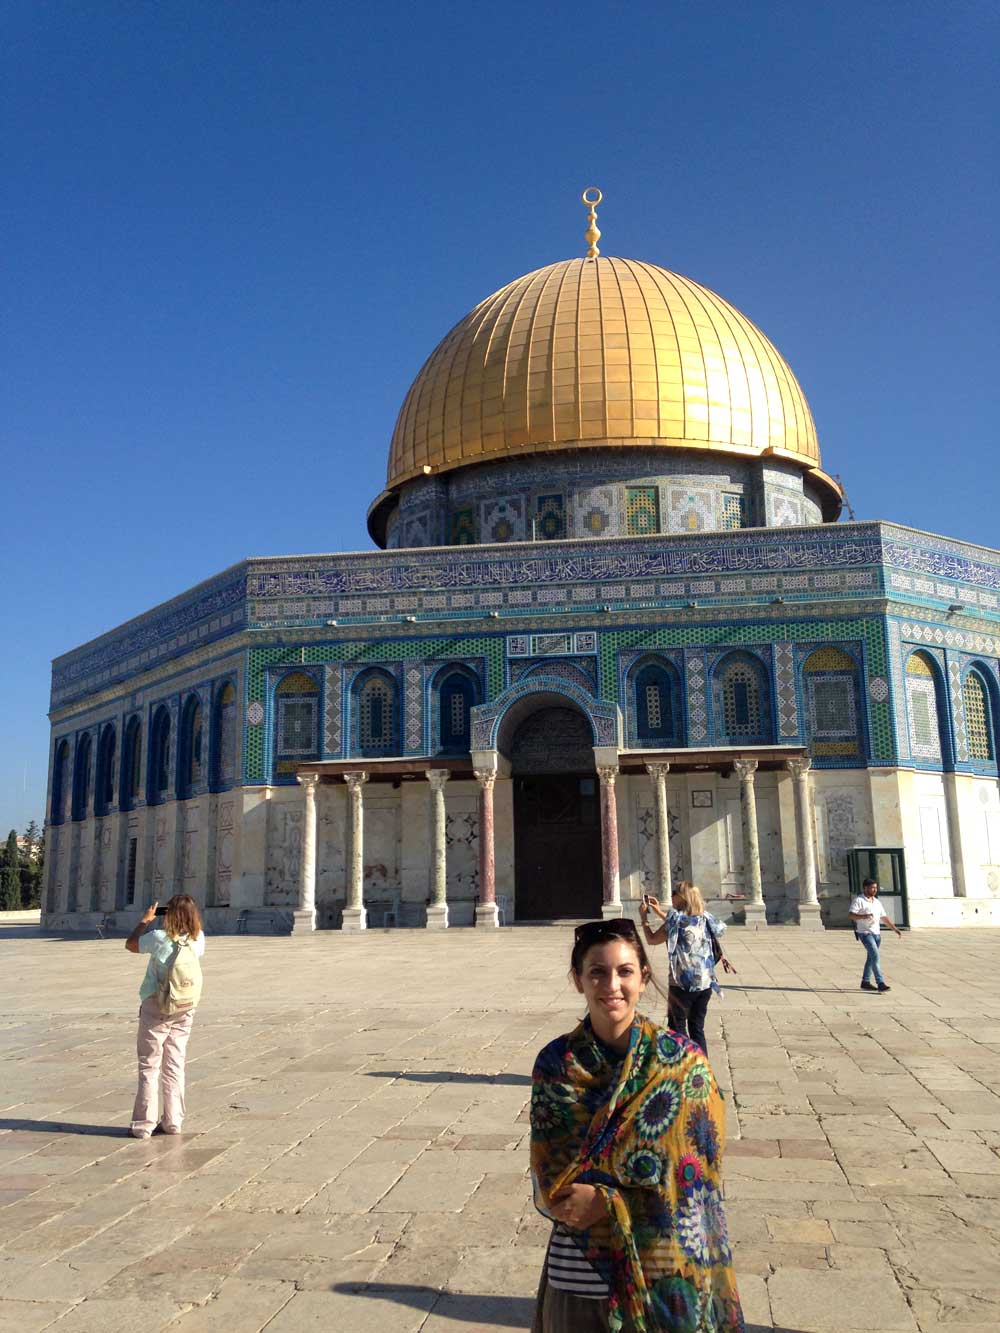 Caitlin at Dome of the Rock